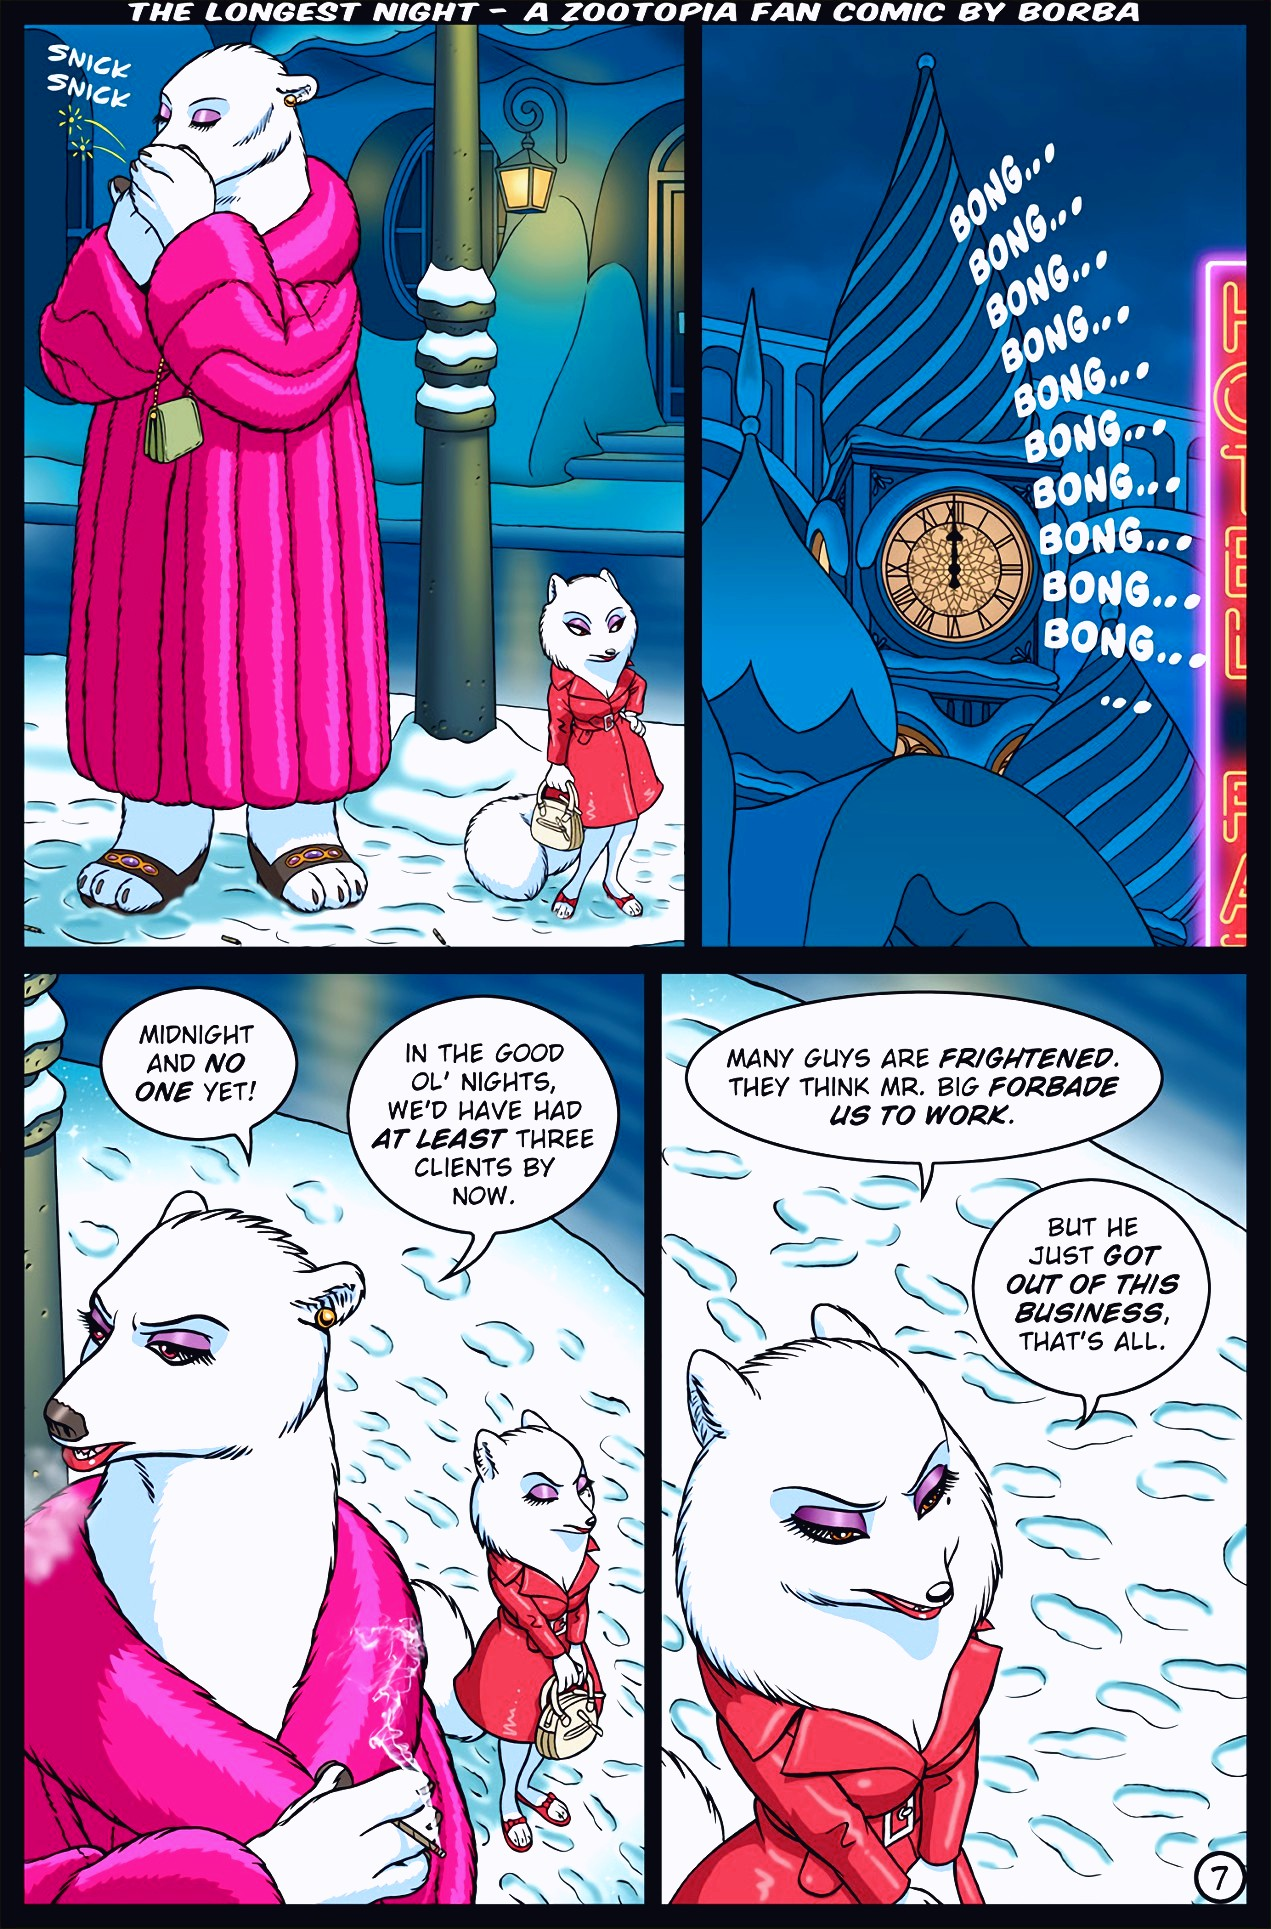 The Longest Night page 07